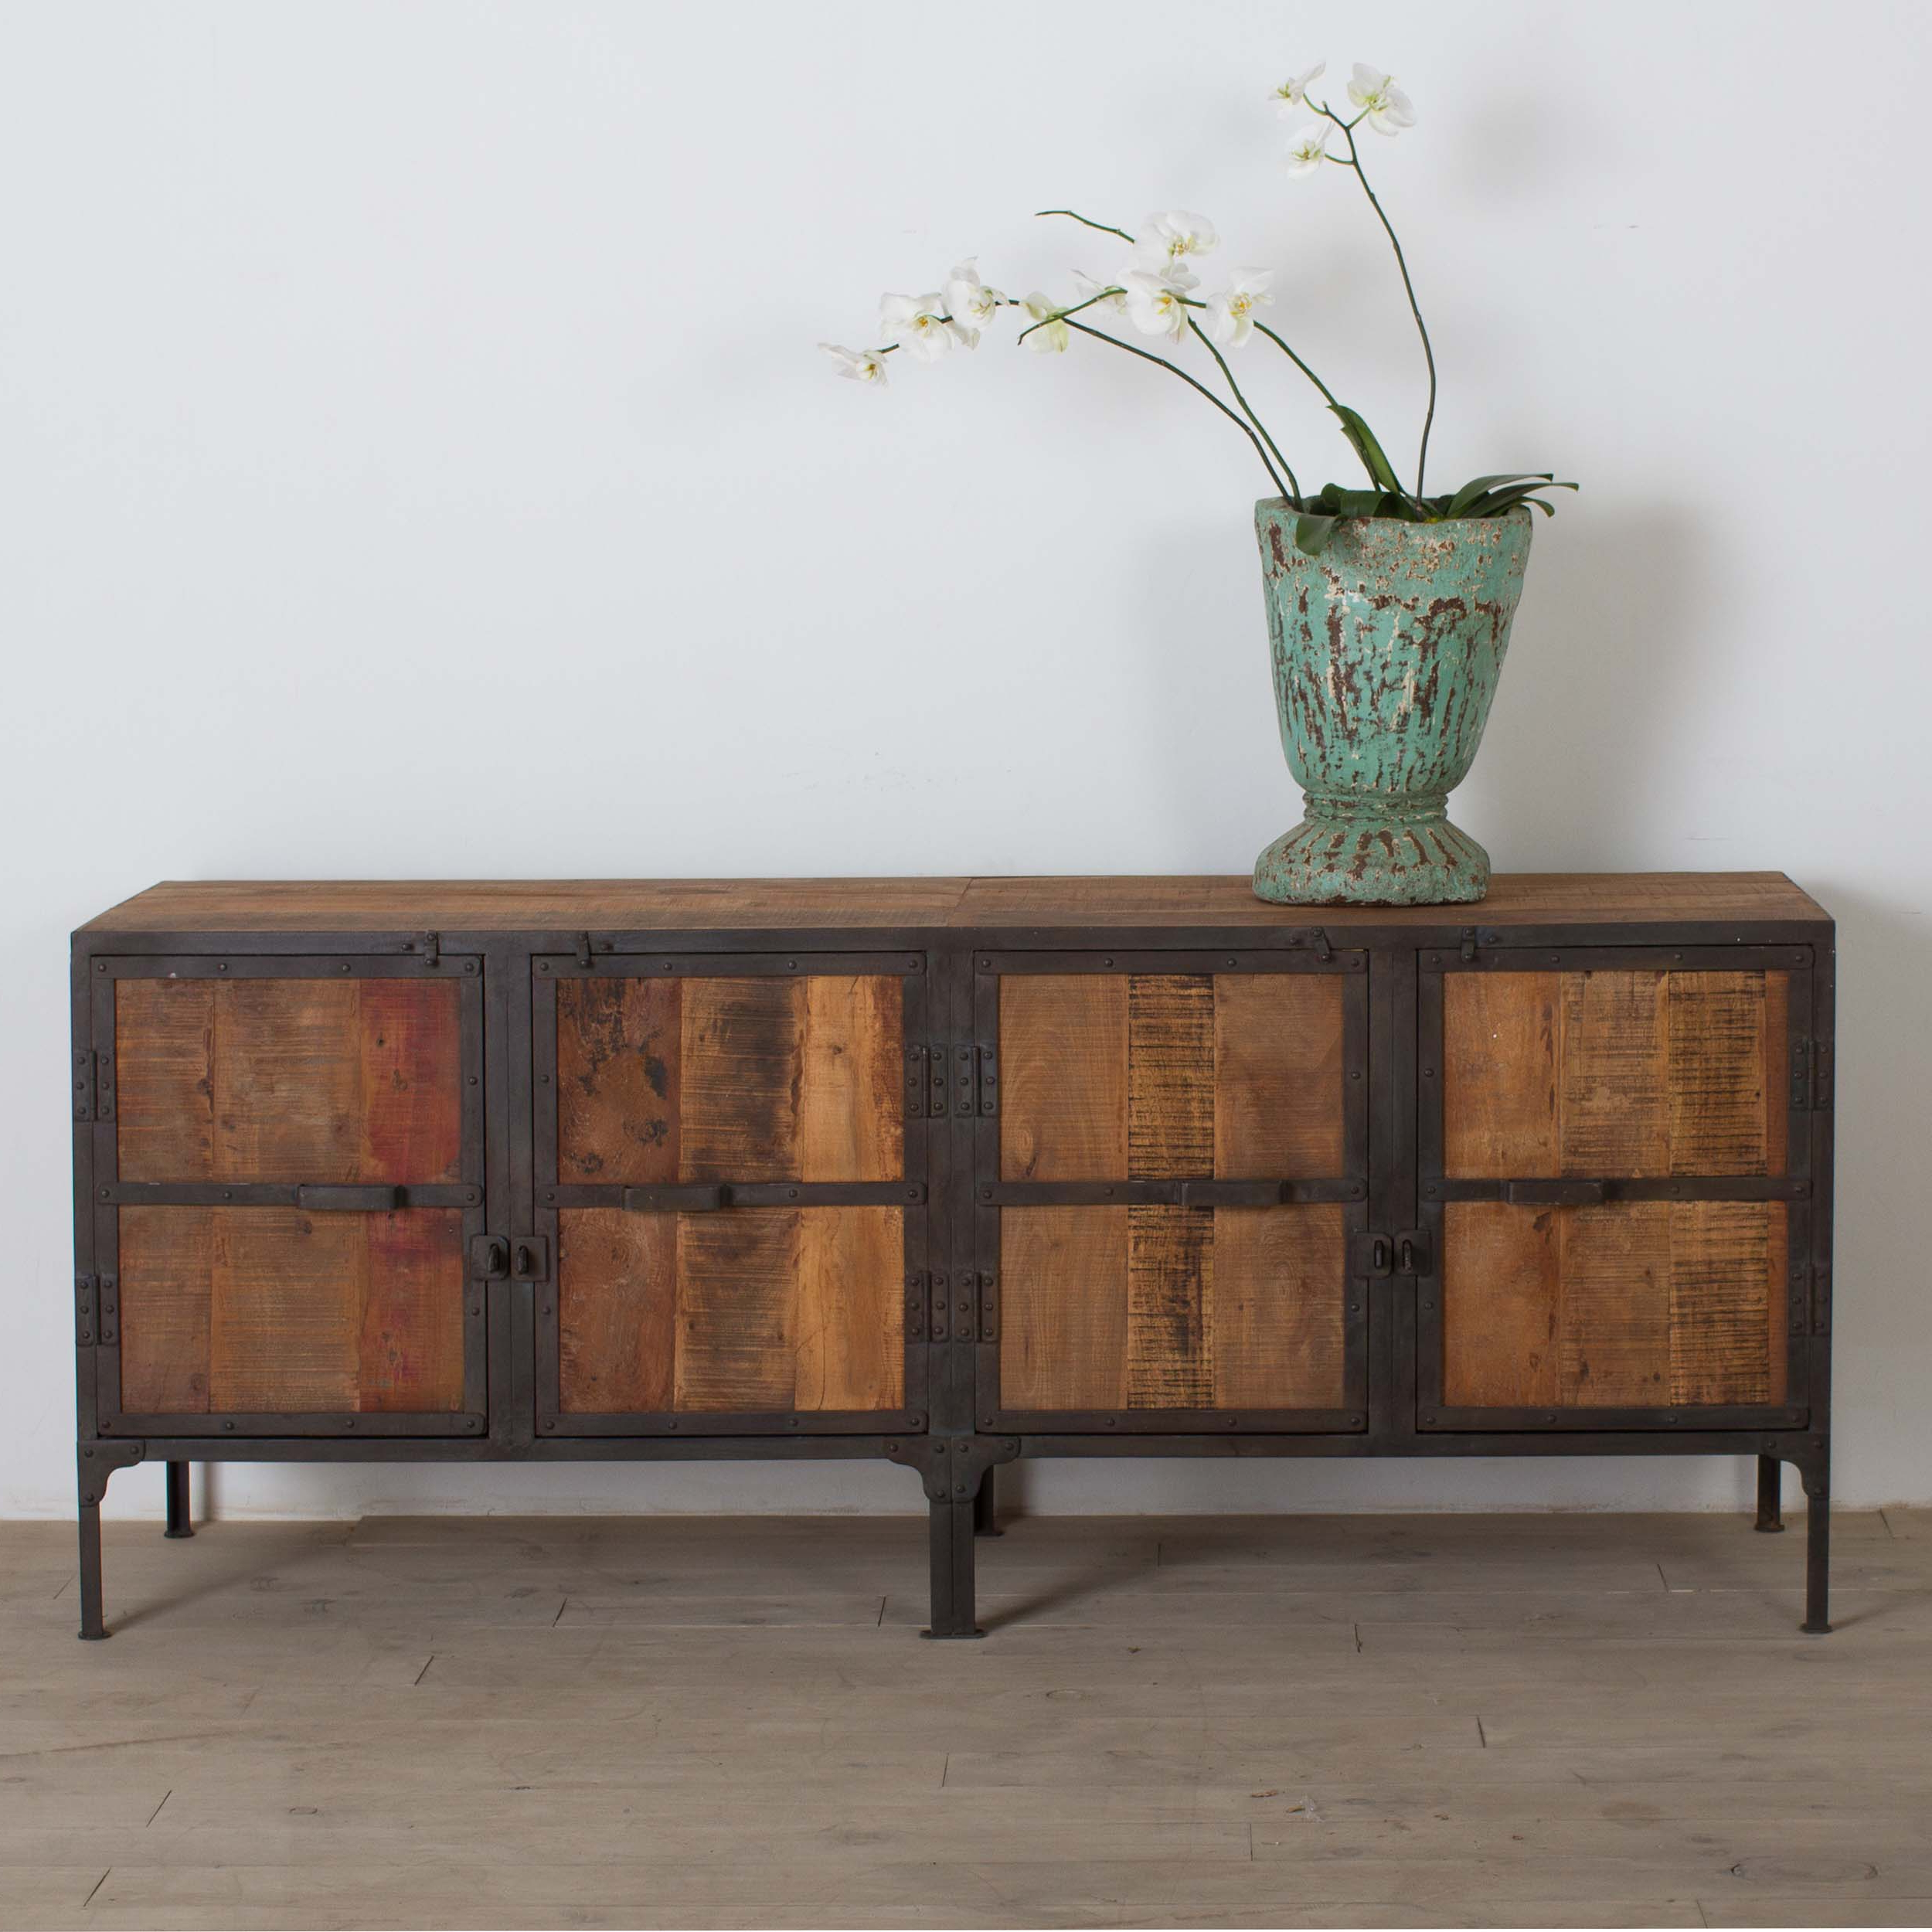 Black Oak Wood And Wrought Iron Sideboards Within Most Up To Date Shop Handmade Cg Sparks Handmade Hyderabad Reclaimed Wood And Metal (View 6 of 20)